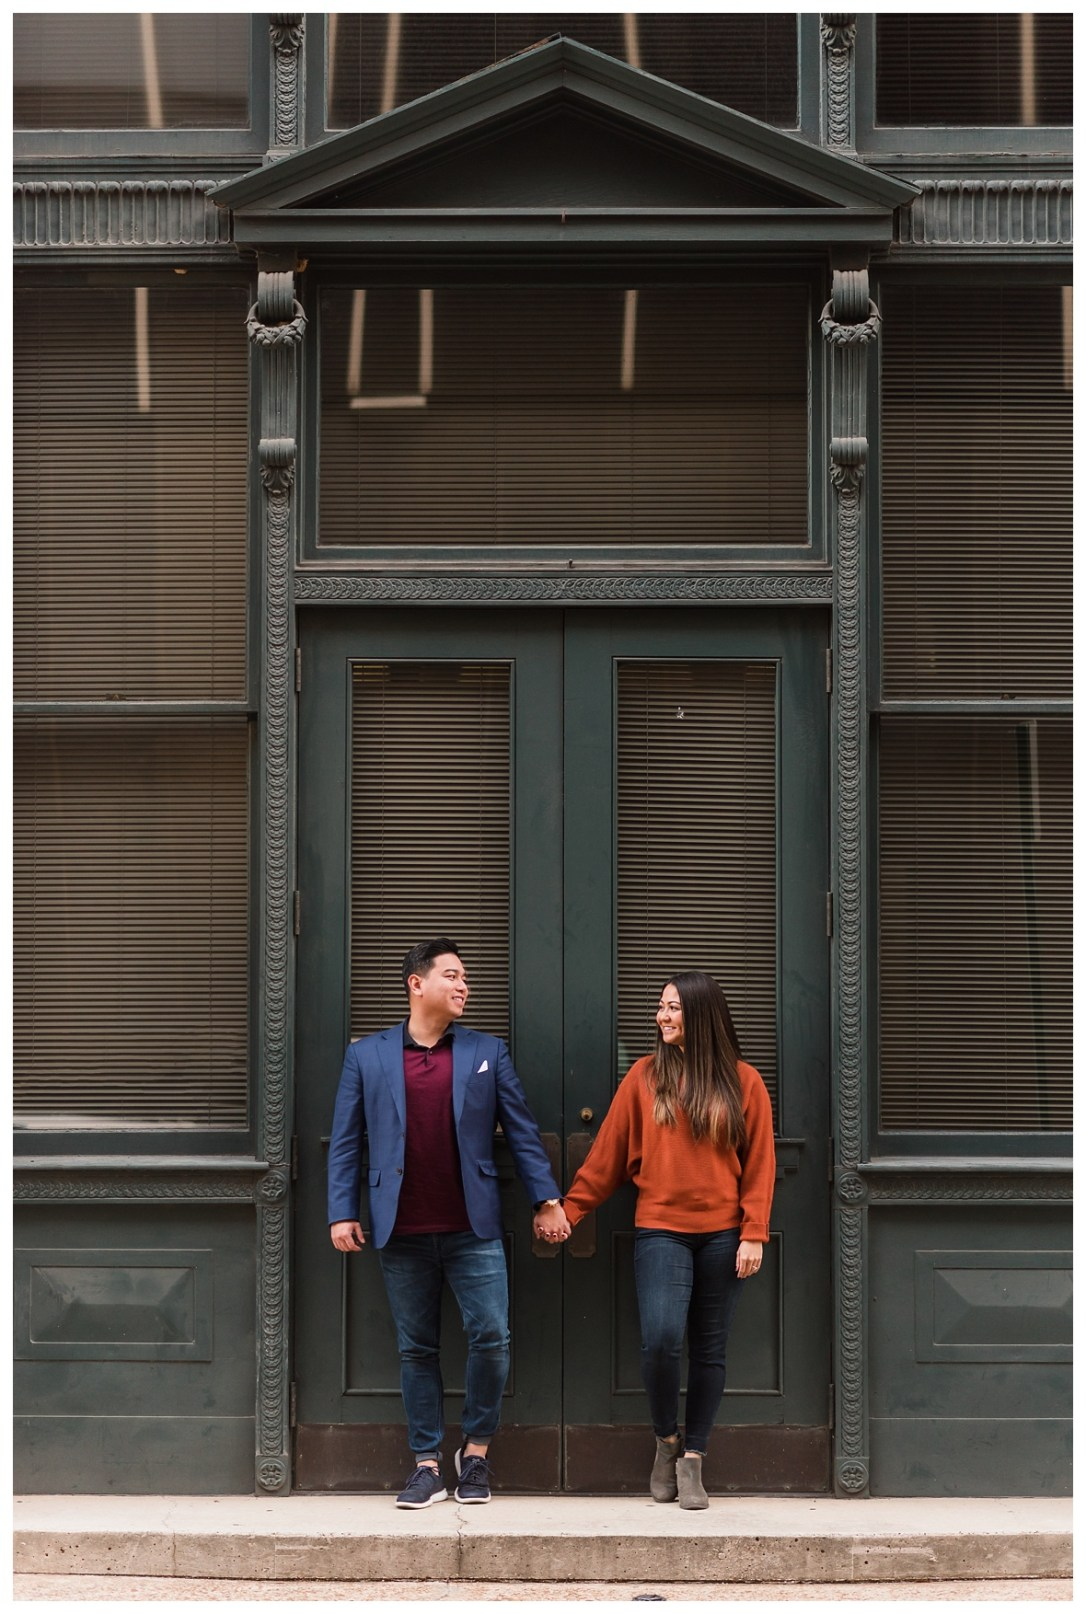 city engagement photo ideas